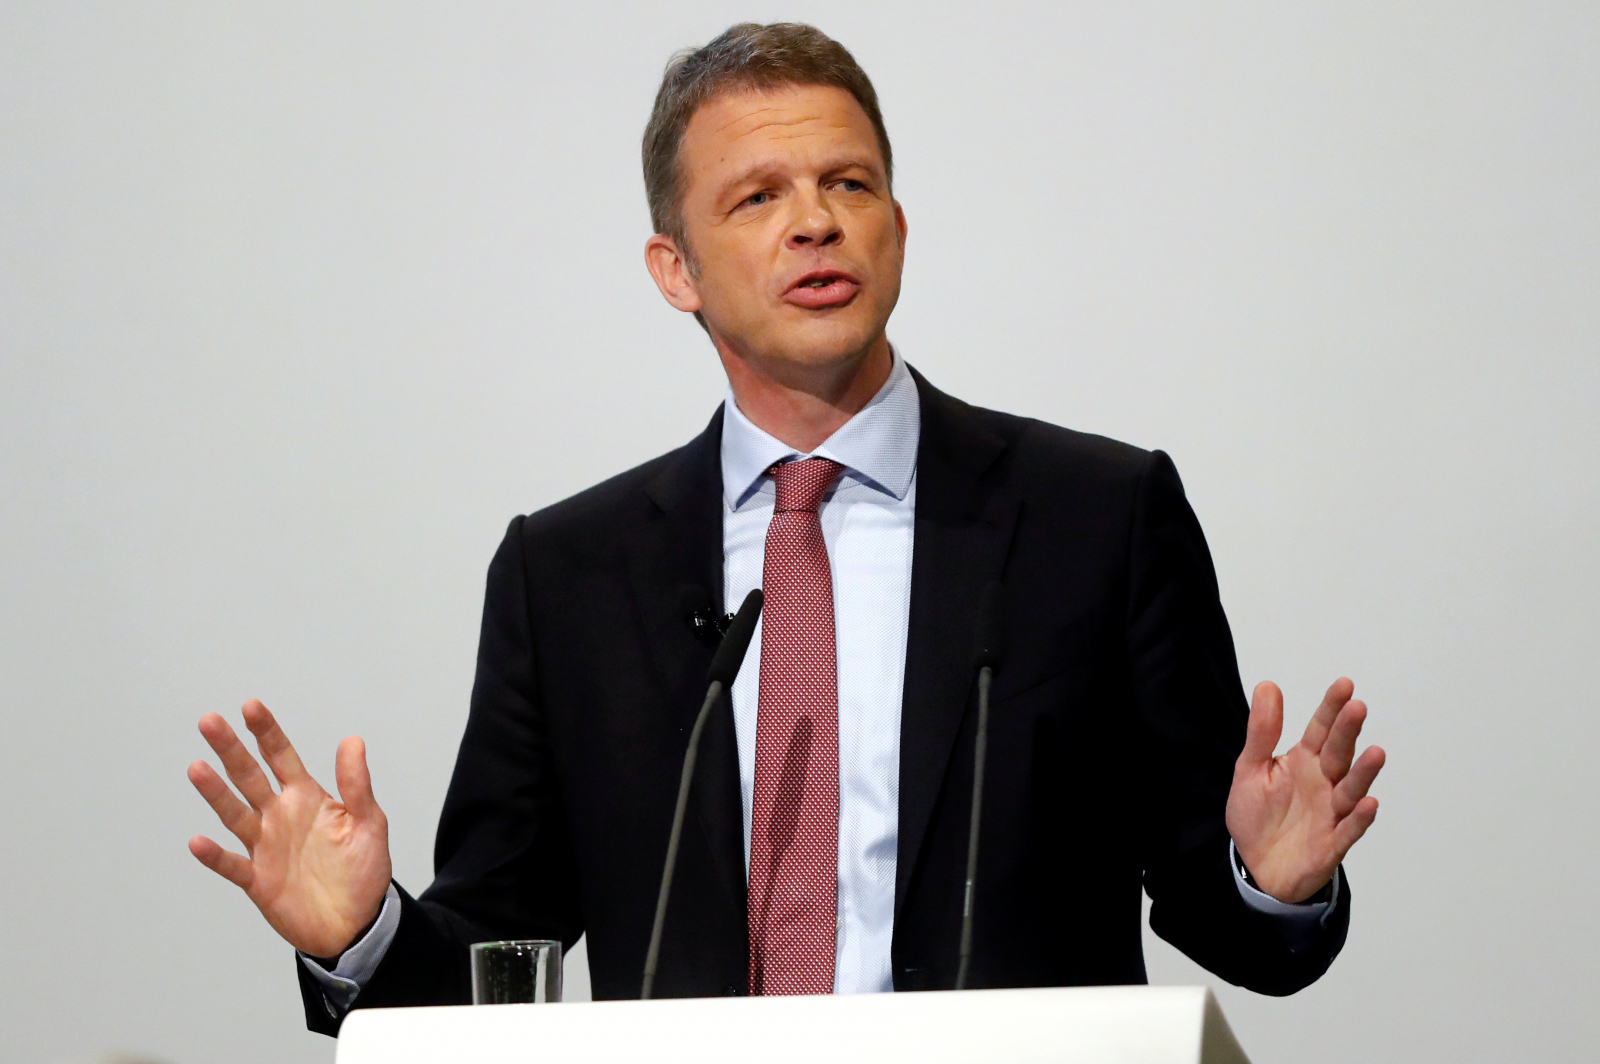 Christian Sewing new CEO of Deutsche Bank